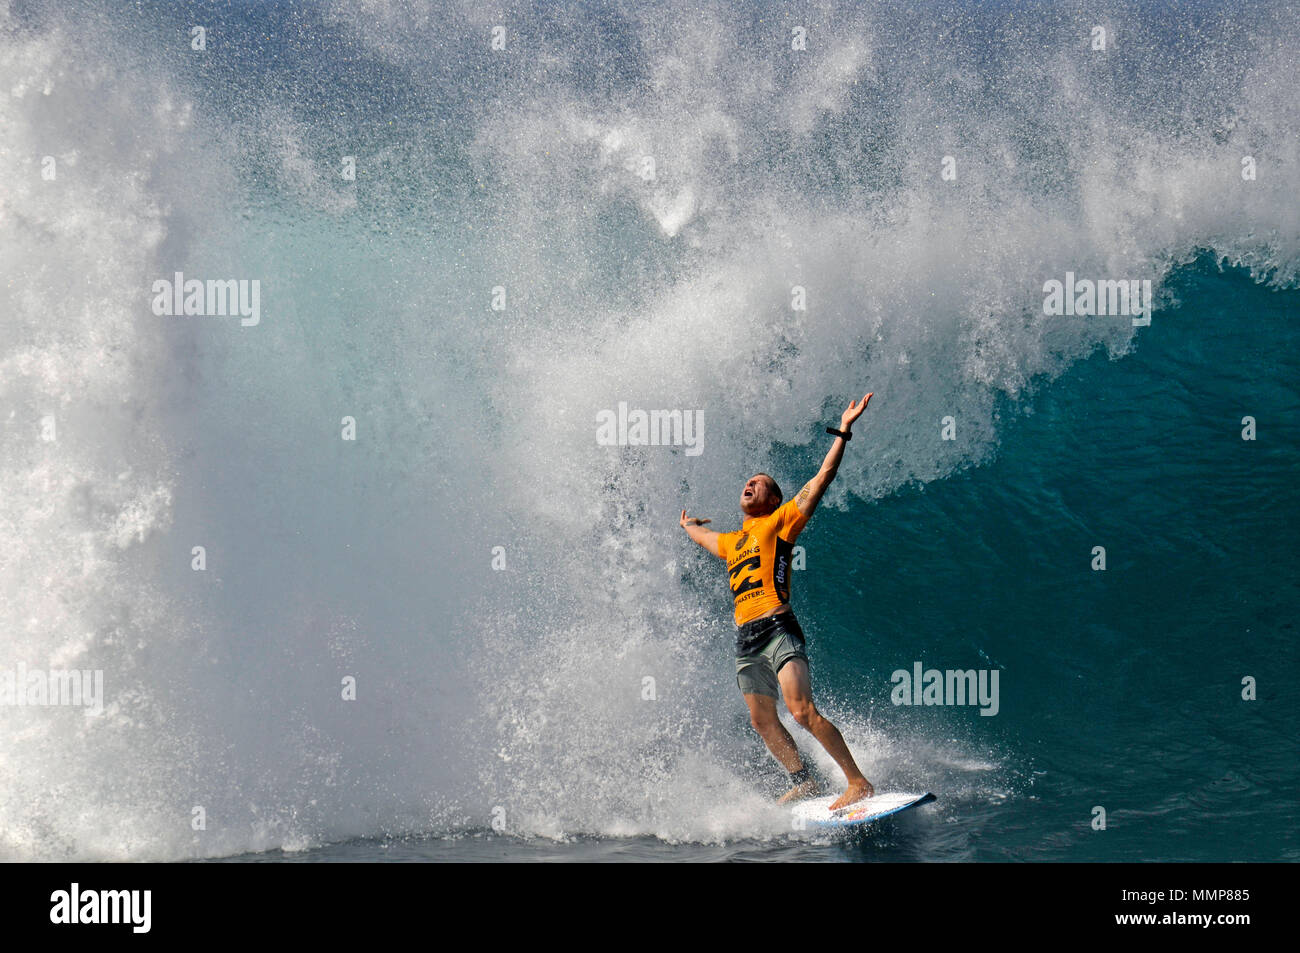 Professional surfer Mick Fanning celebrates surfing a big wave during the Billabong Pipe Masters Championship 2015, North Shore, Oahu, Hawaii - Stock Image